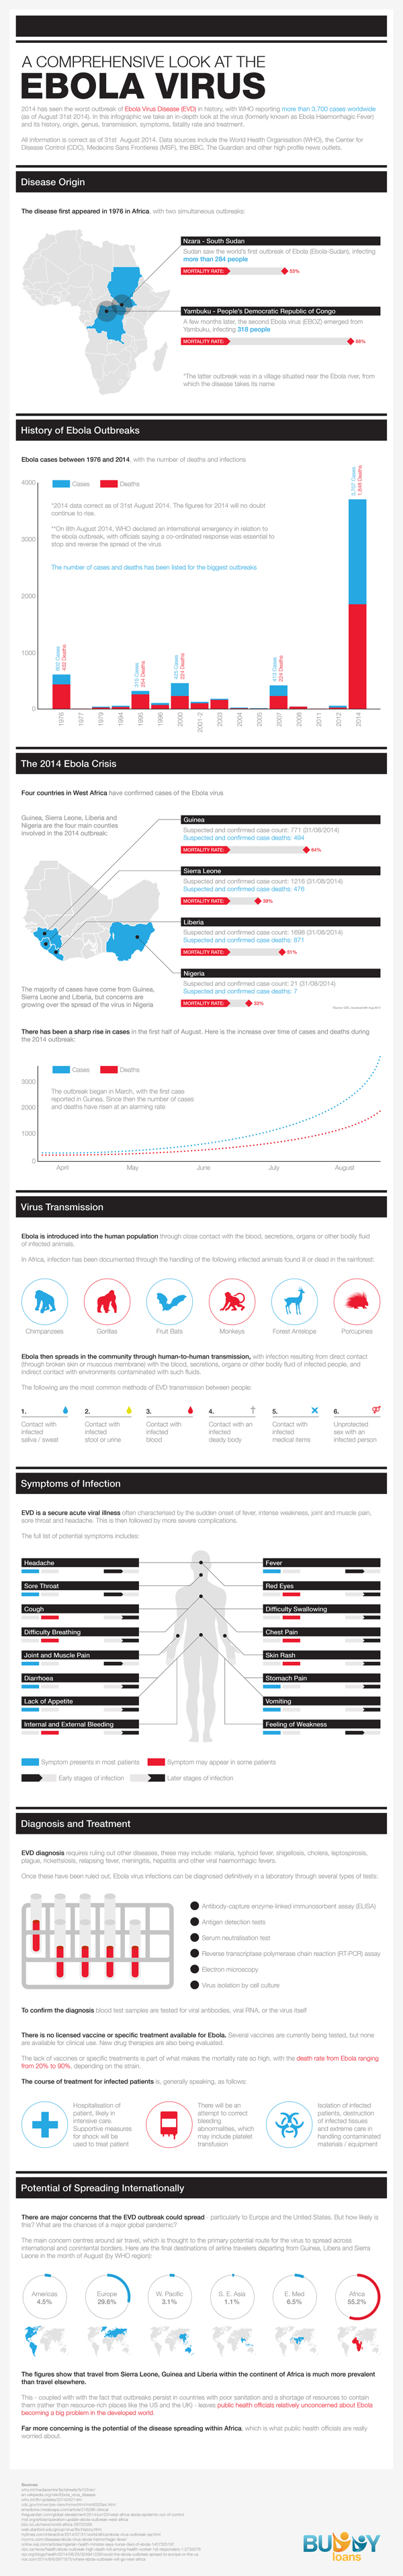 A Comprehensive Look at the Ebola Virus infographic